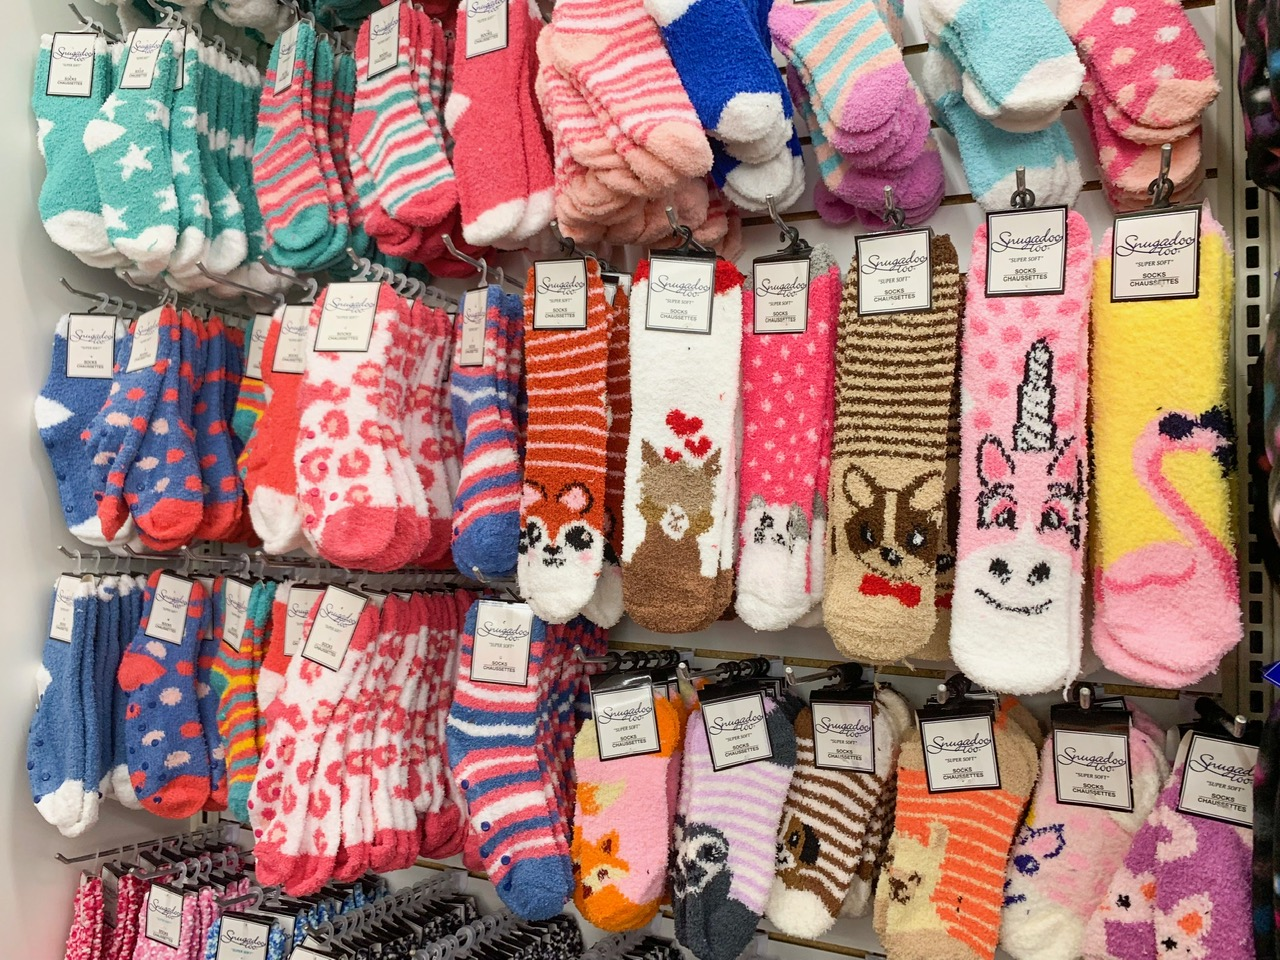 buy socks for Disney at Dollar Tree